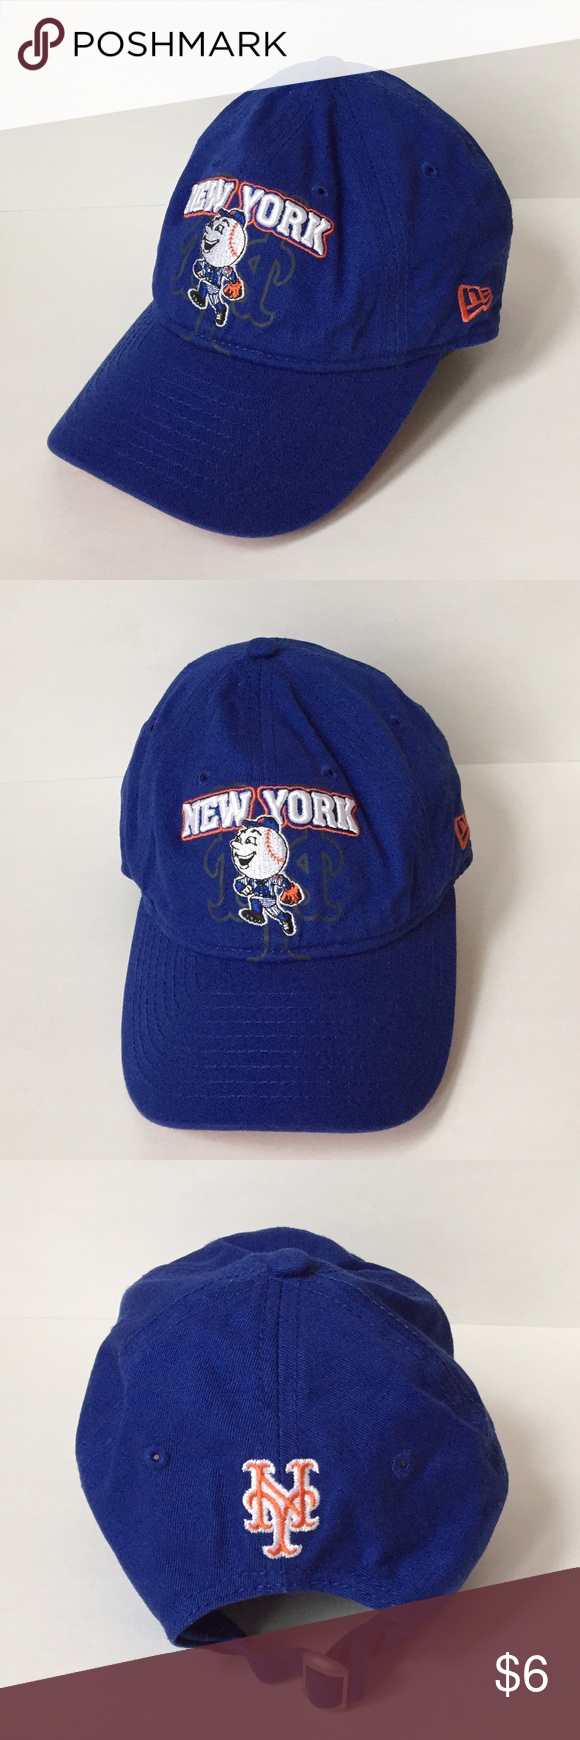 buy popular 20402 8a14d ... reduced new york mets mr. met youth hat your little mets fan will adore  this